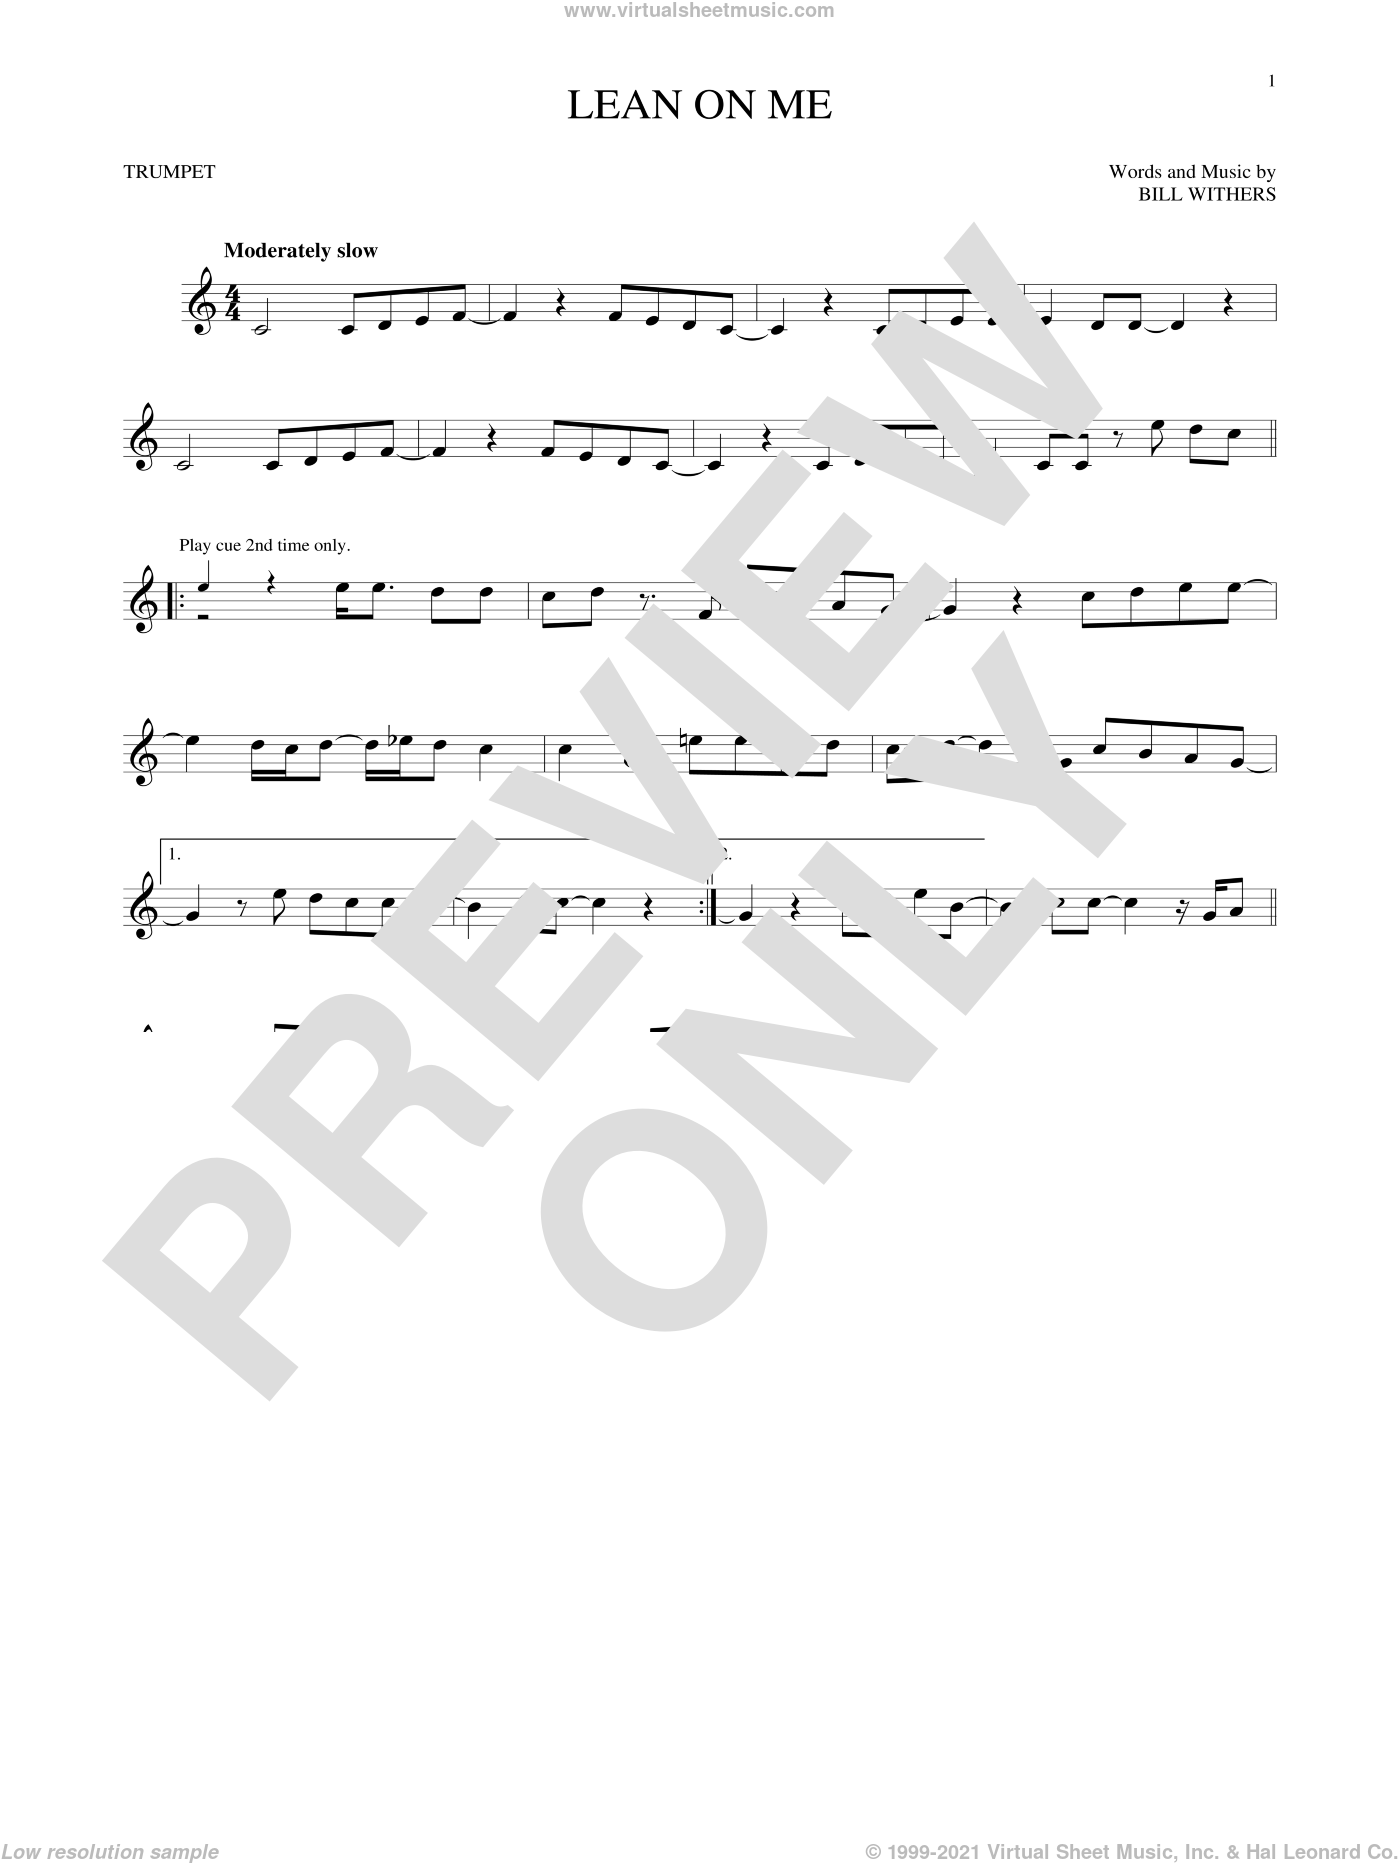 Lean On Me sheet music for trumpet solo by Bill Withers, intermediate